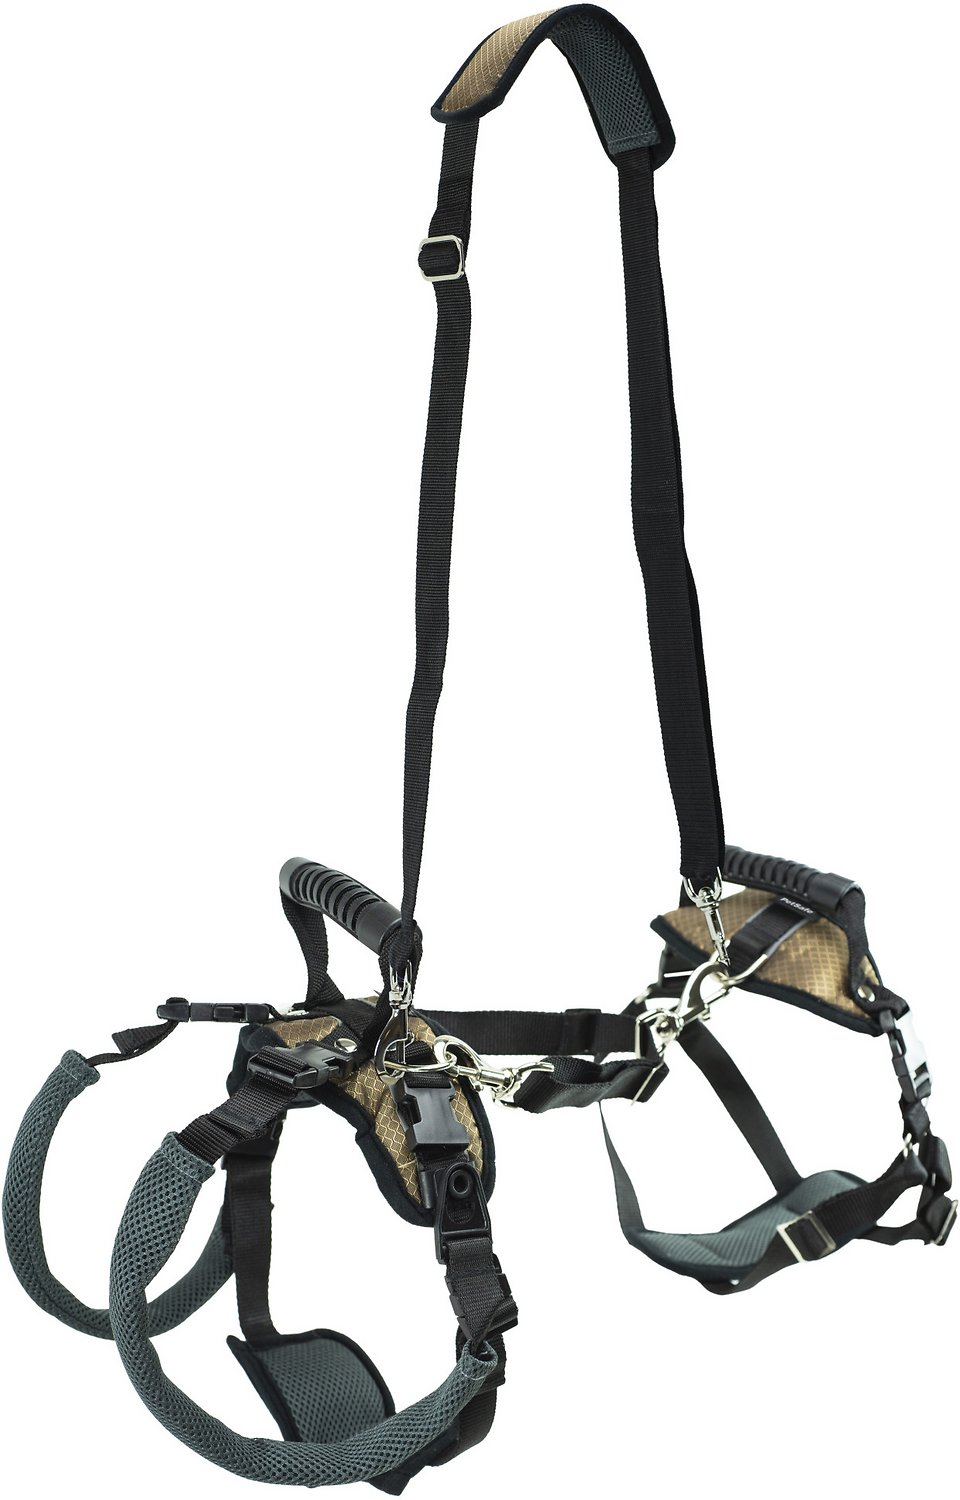 hight resolution of solvit carelift full front back lifting aid mobility dog harness